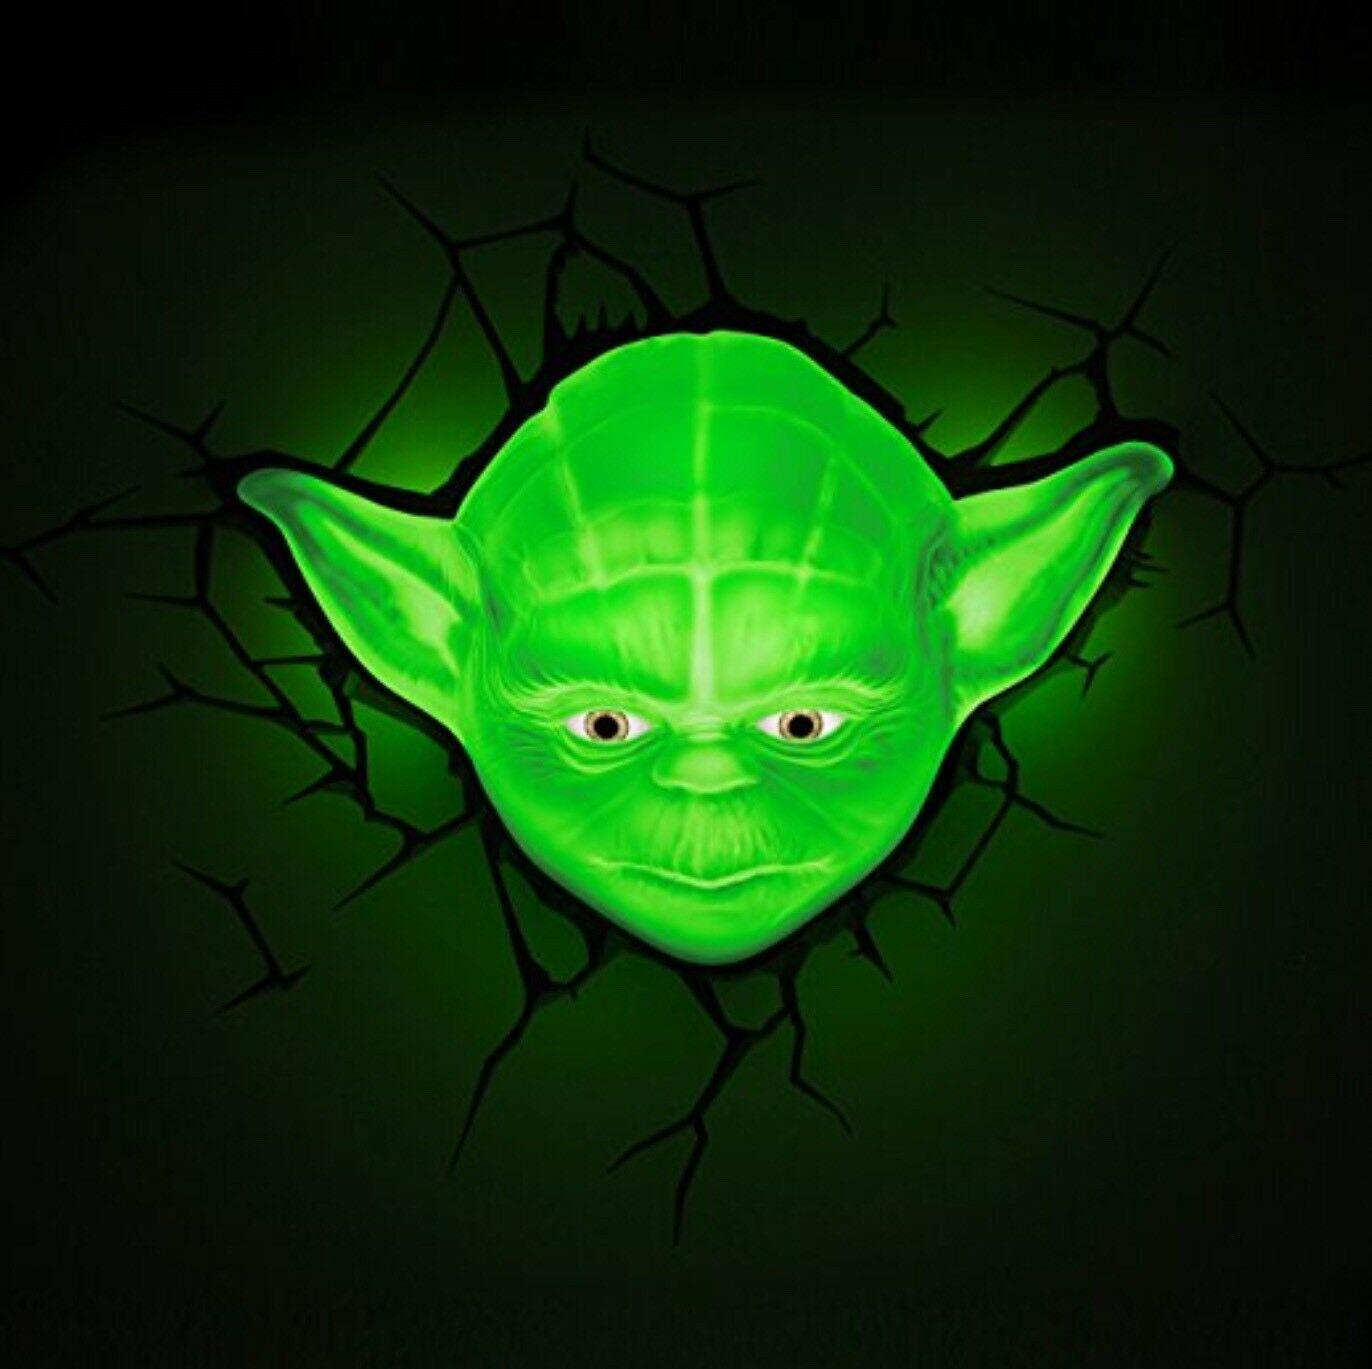 Star Wars Yoda Face 3d Deco Light Night Safety Light Led Bulbs New - 3d Deko Light